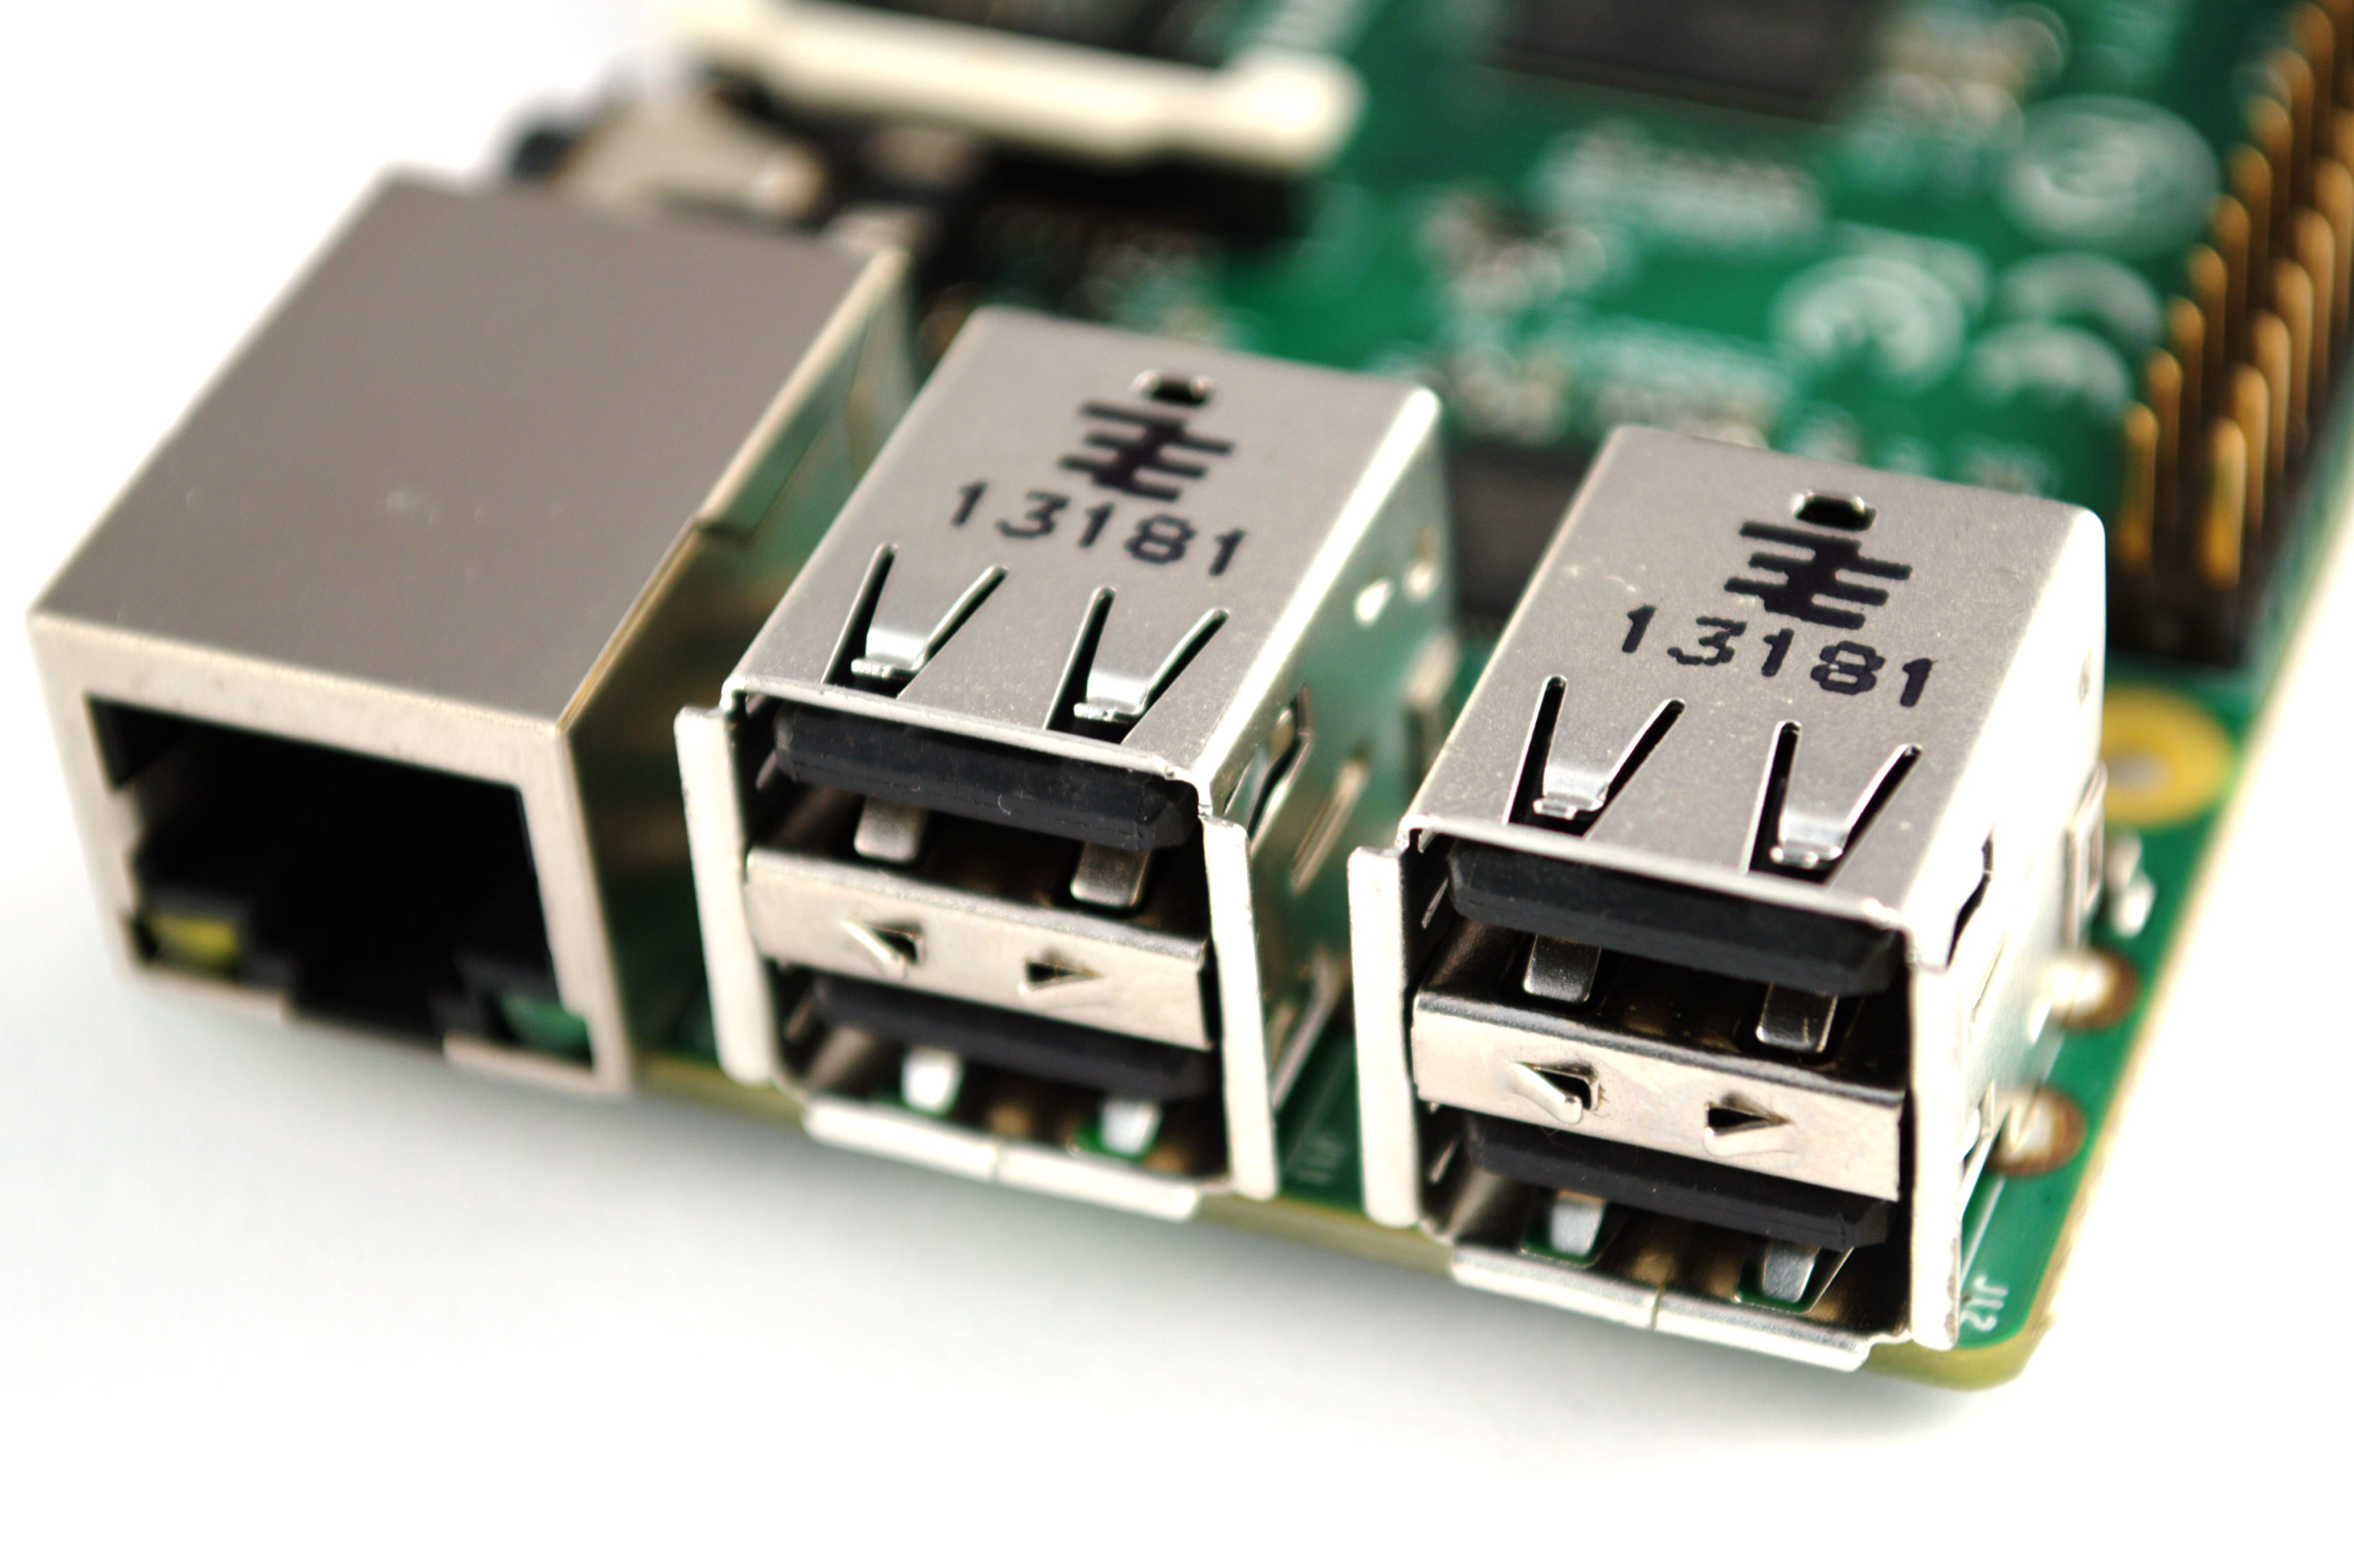 6 Fun Use Cases For Raspberry Pi - Diligex Managed IT - Blog